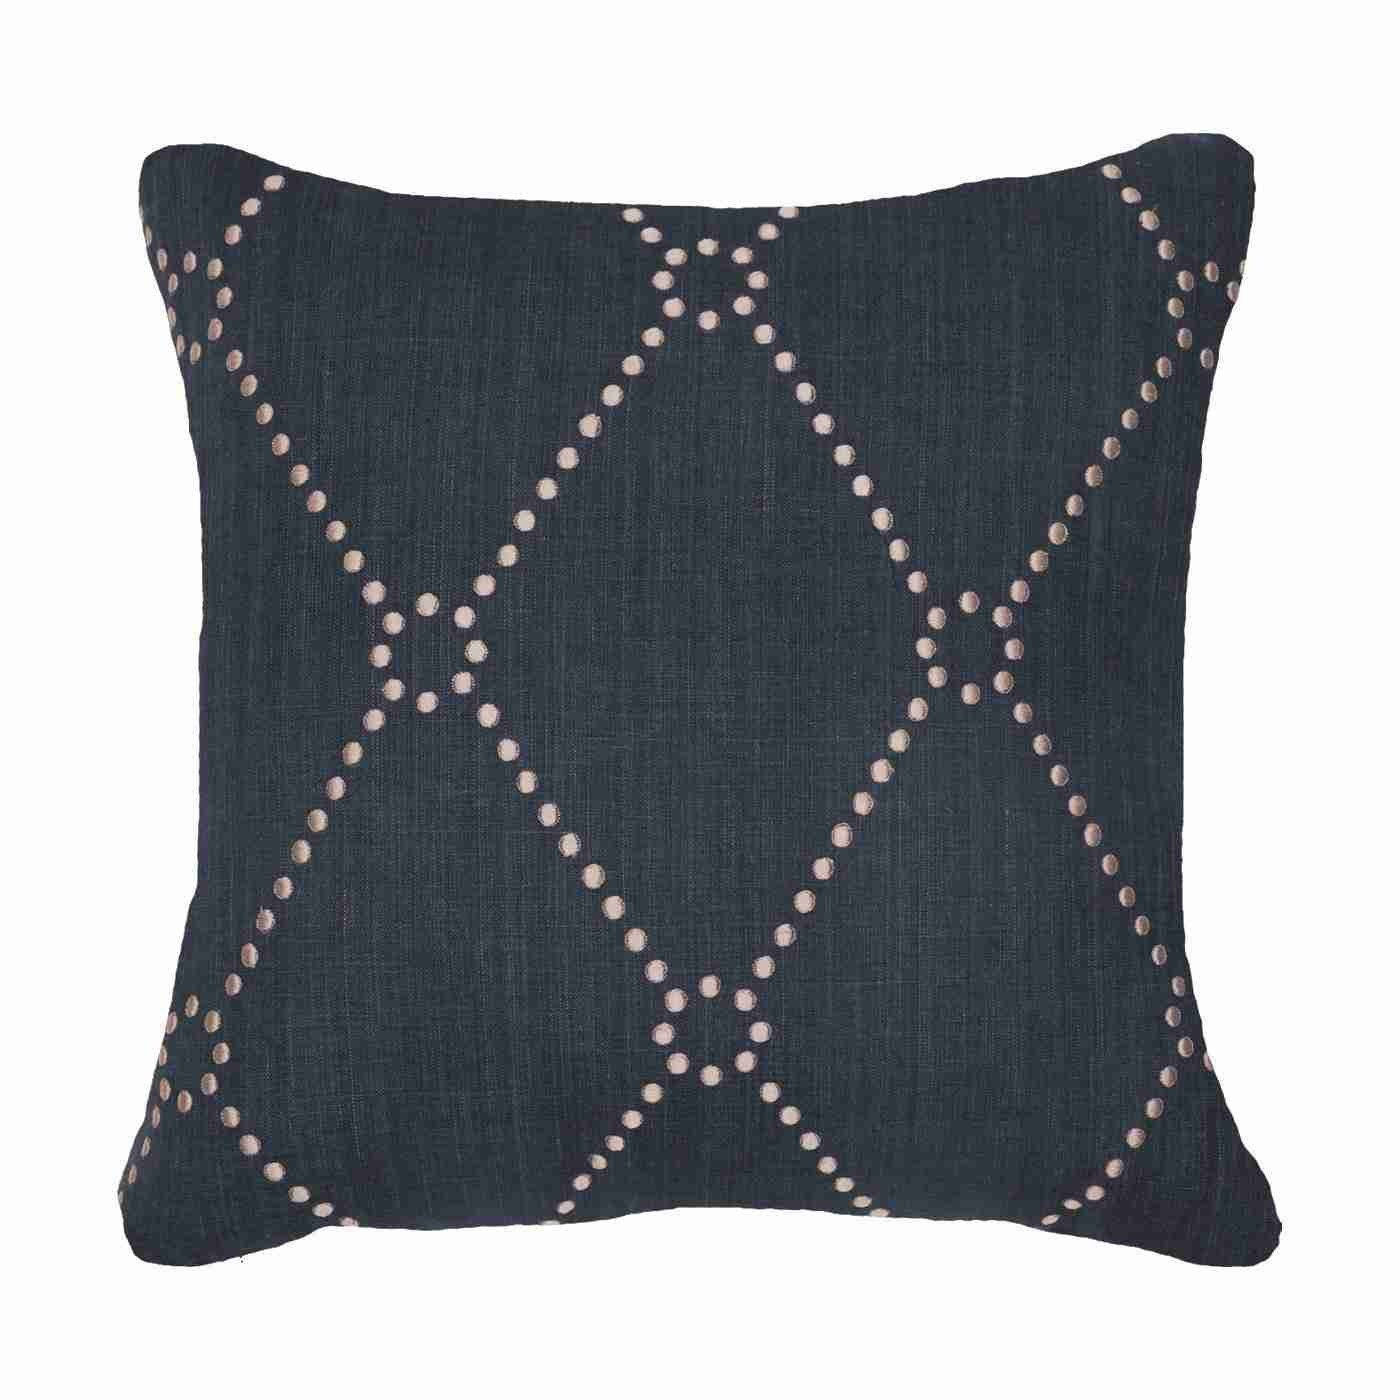 Bandhini Homewear Design Medium Cushion Navy / 19 x 19 Dot Diamond Navy Medium Cushion 50x50cm